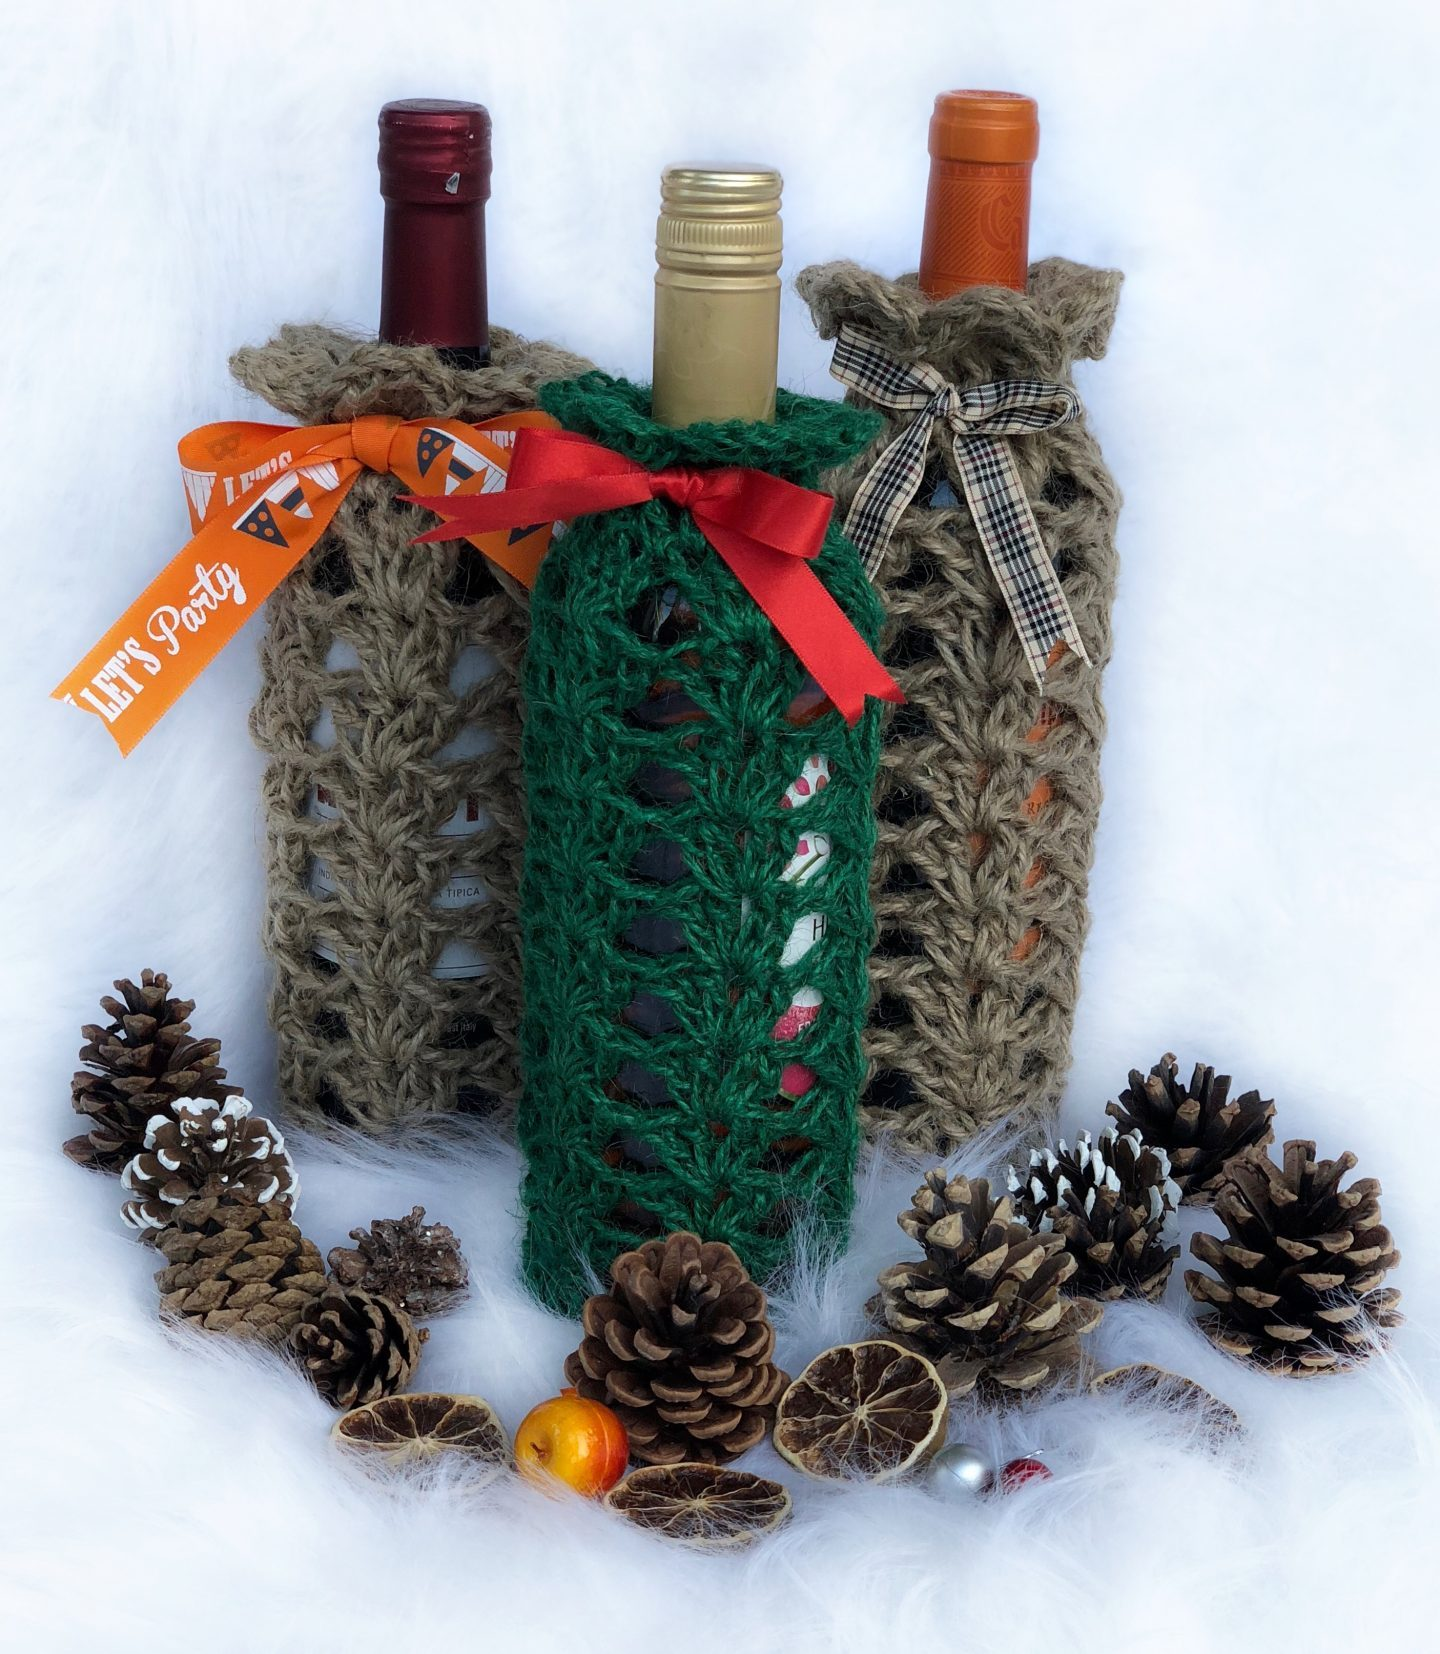 Crochet wine bottle covers with pine cones and dried orange slices.